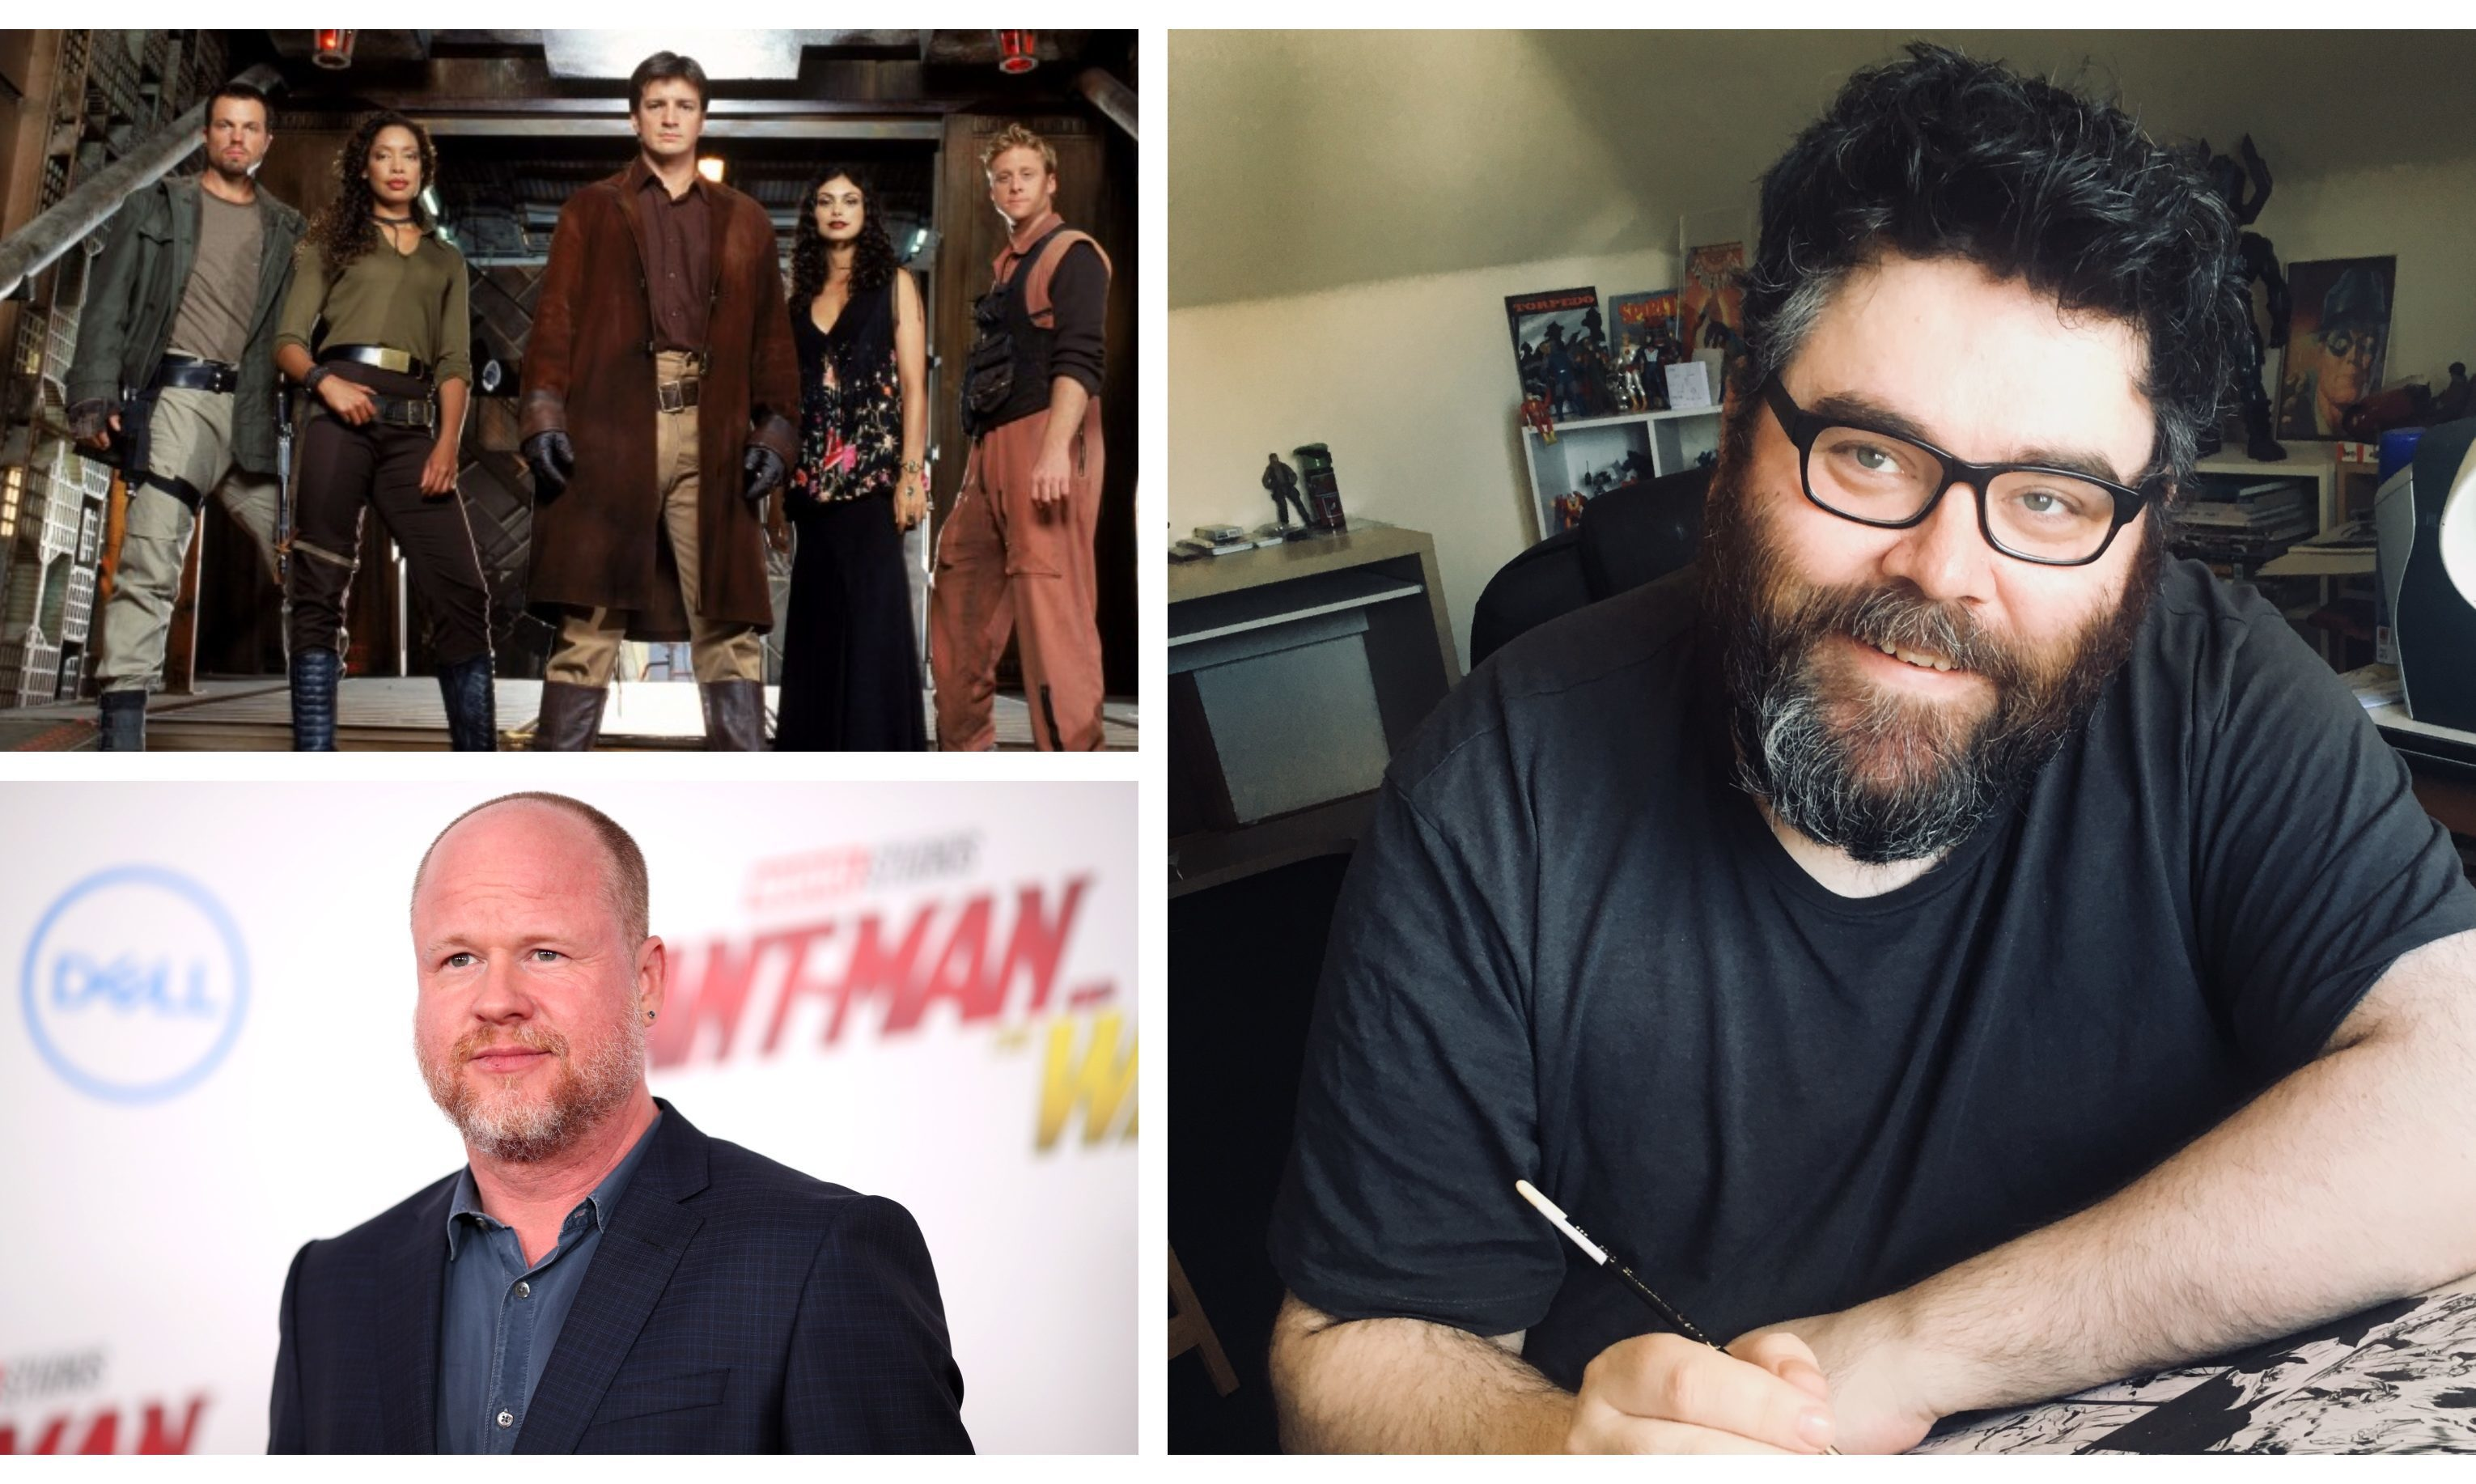 Dan McDaid (right), the cast of Firefly (top left) and the show's creator Joss Whedon (bottom left).